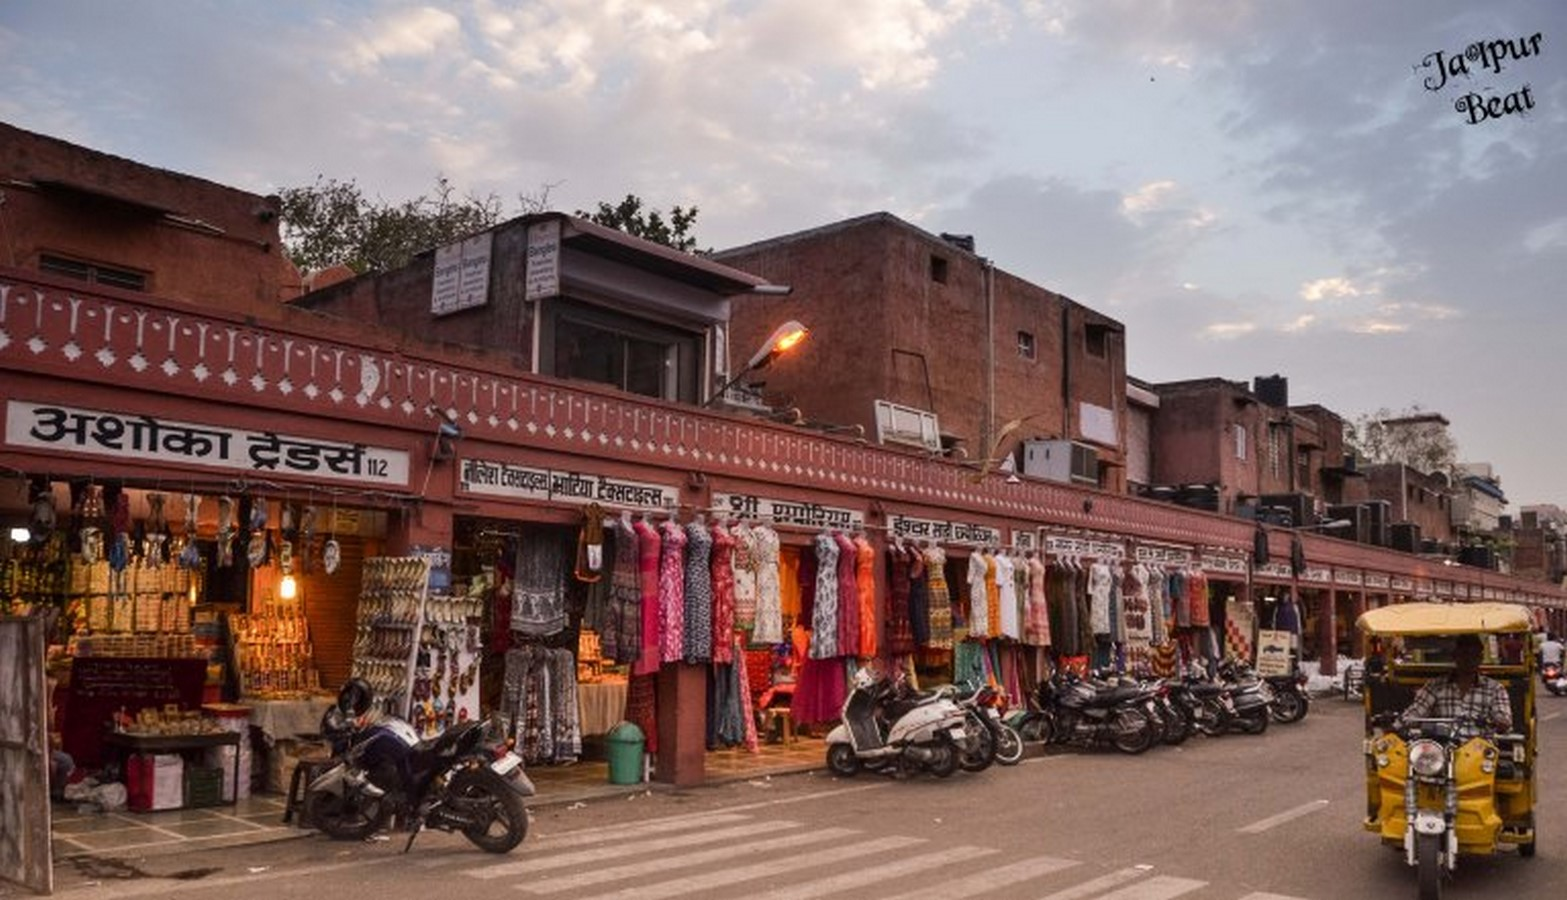 Architecture of Indian Cities: Jaipur- The Pink City of India - Sheet14